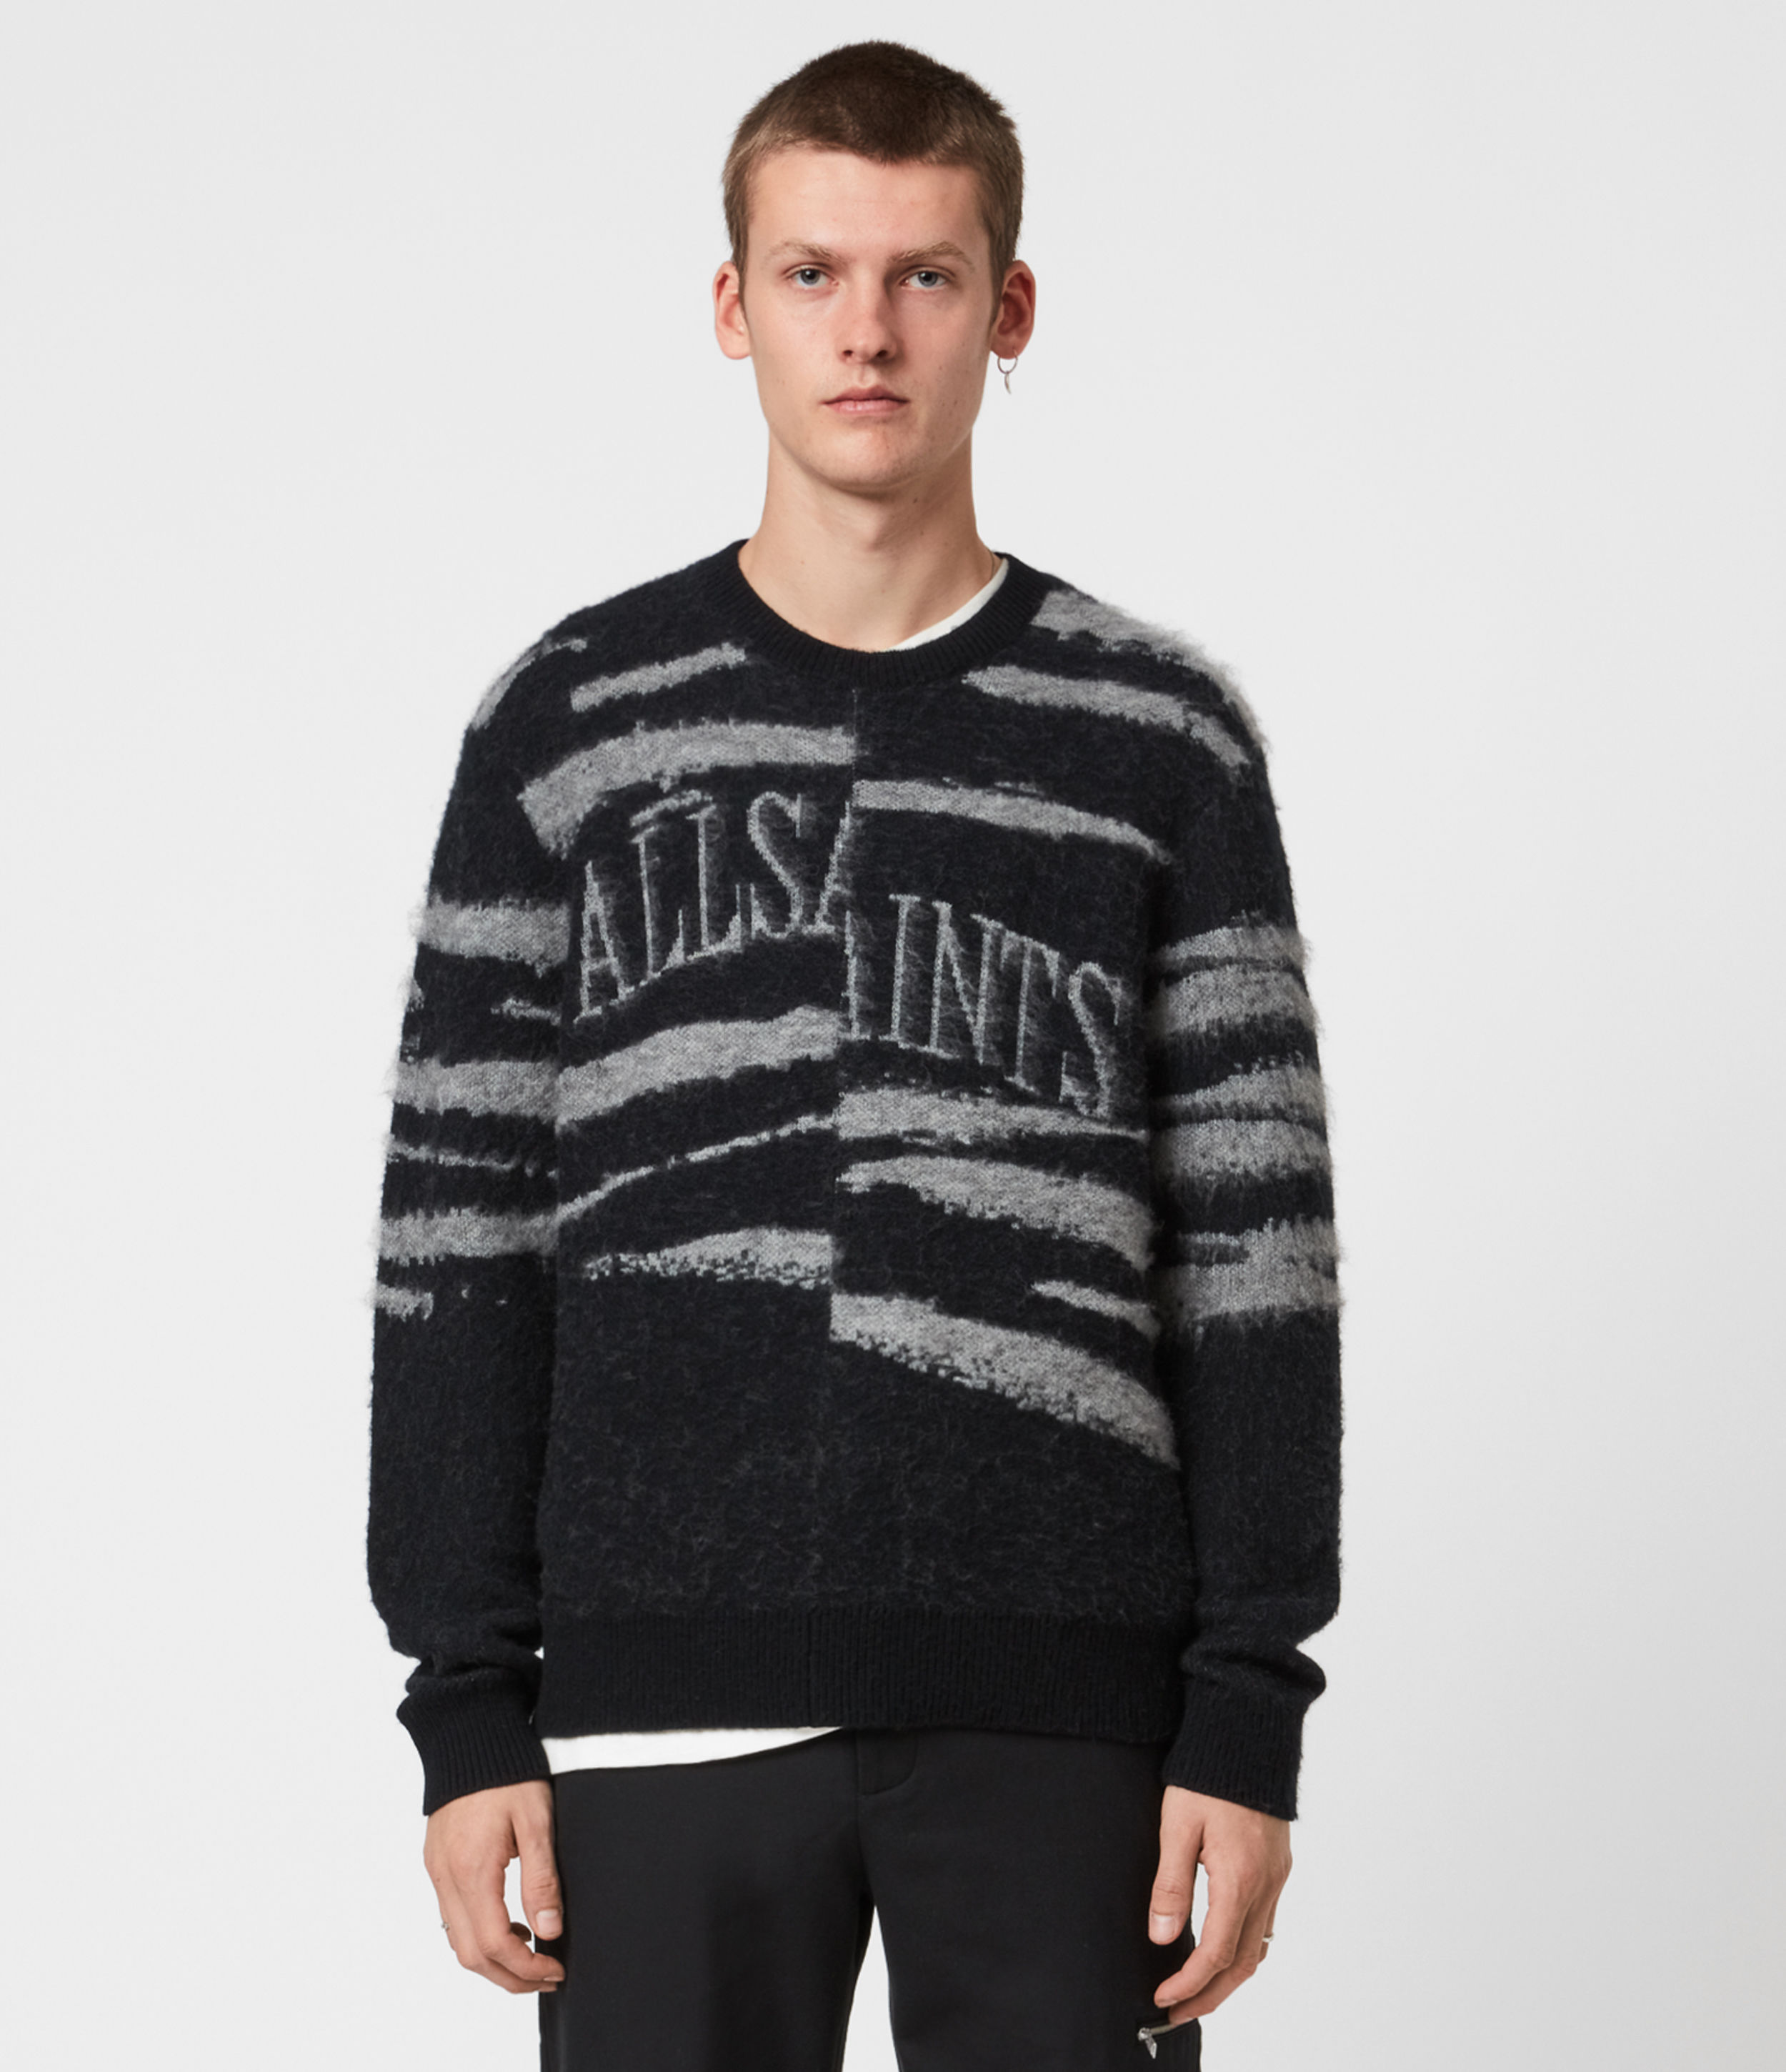 AllSaints Ture Saints Crew Jumper